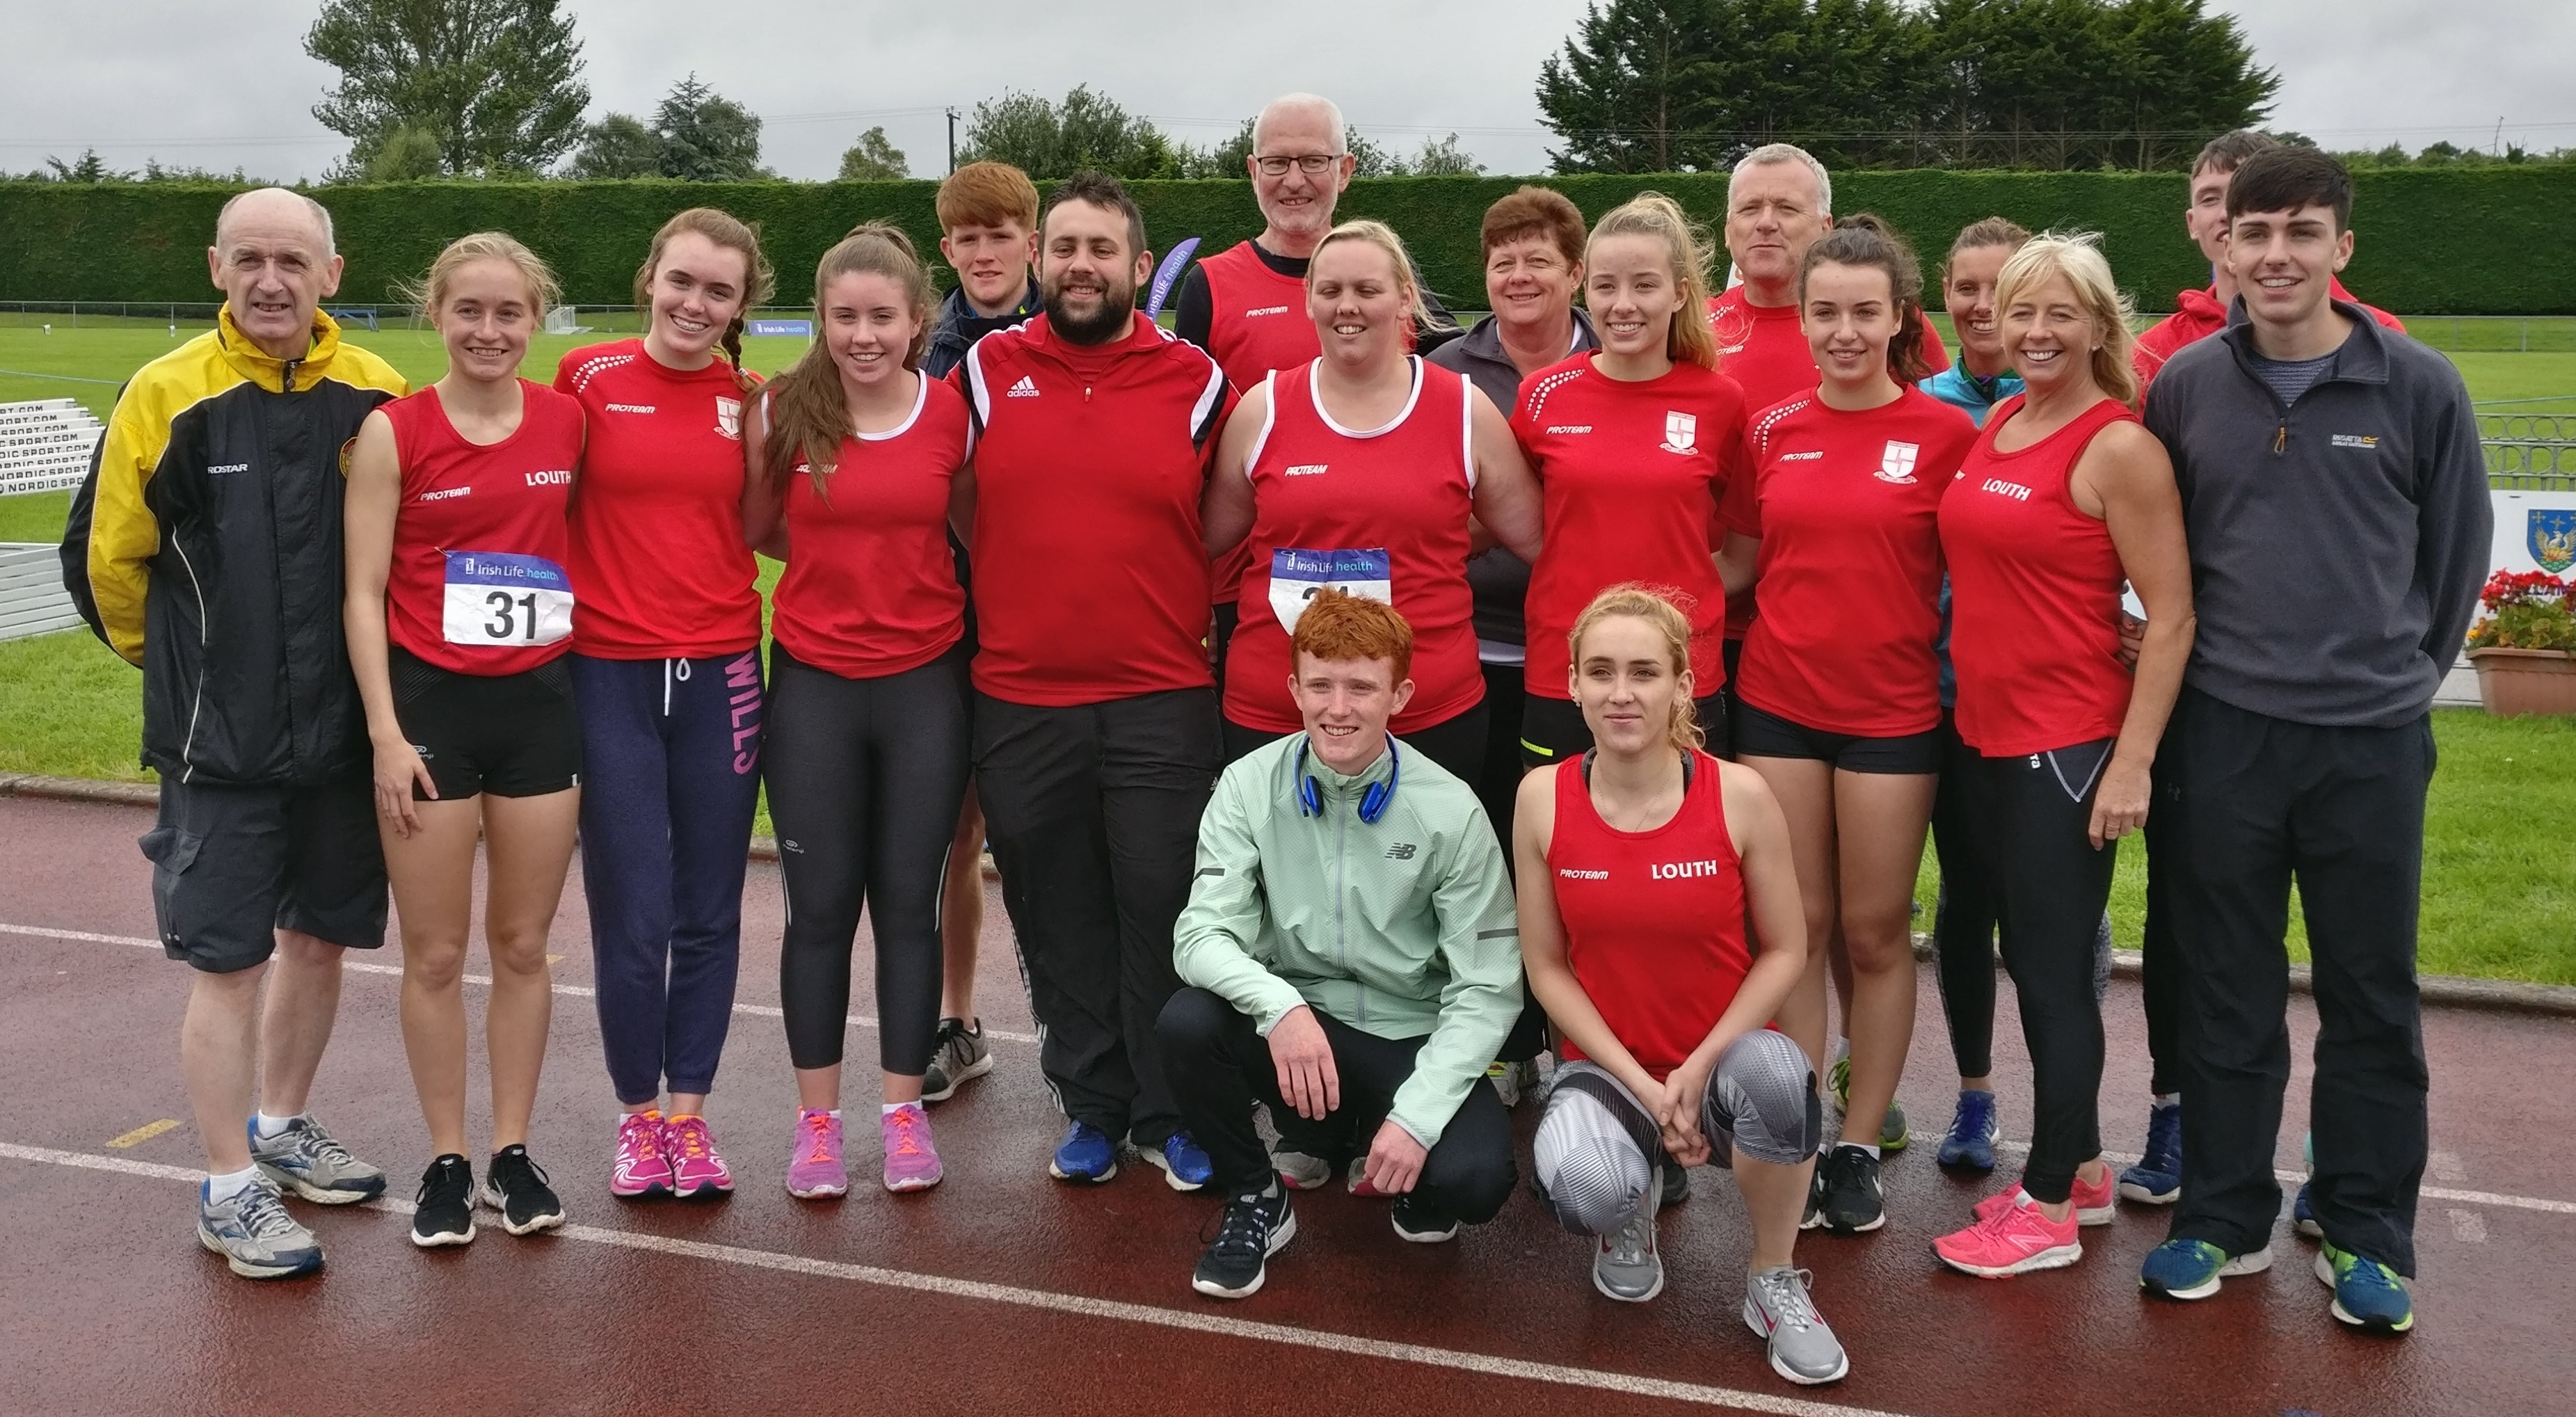 Louth athletes (including Tom McGrane) at Irish League Final (Tullamore, August 2017)